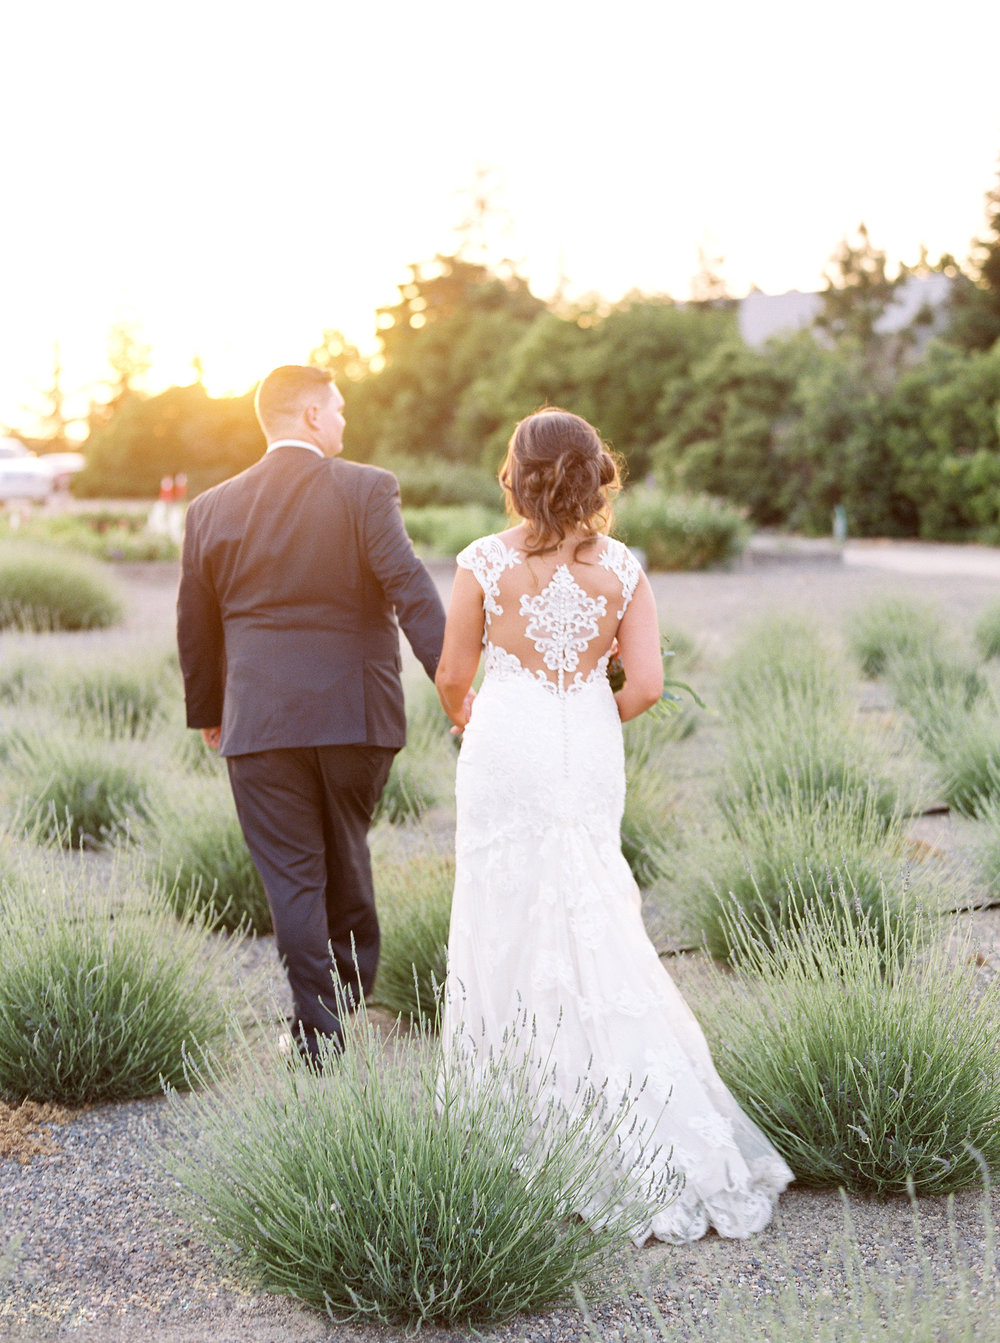 pageo-lavender-farm-wedding-turlock-california-84.jpg